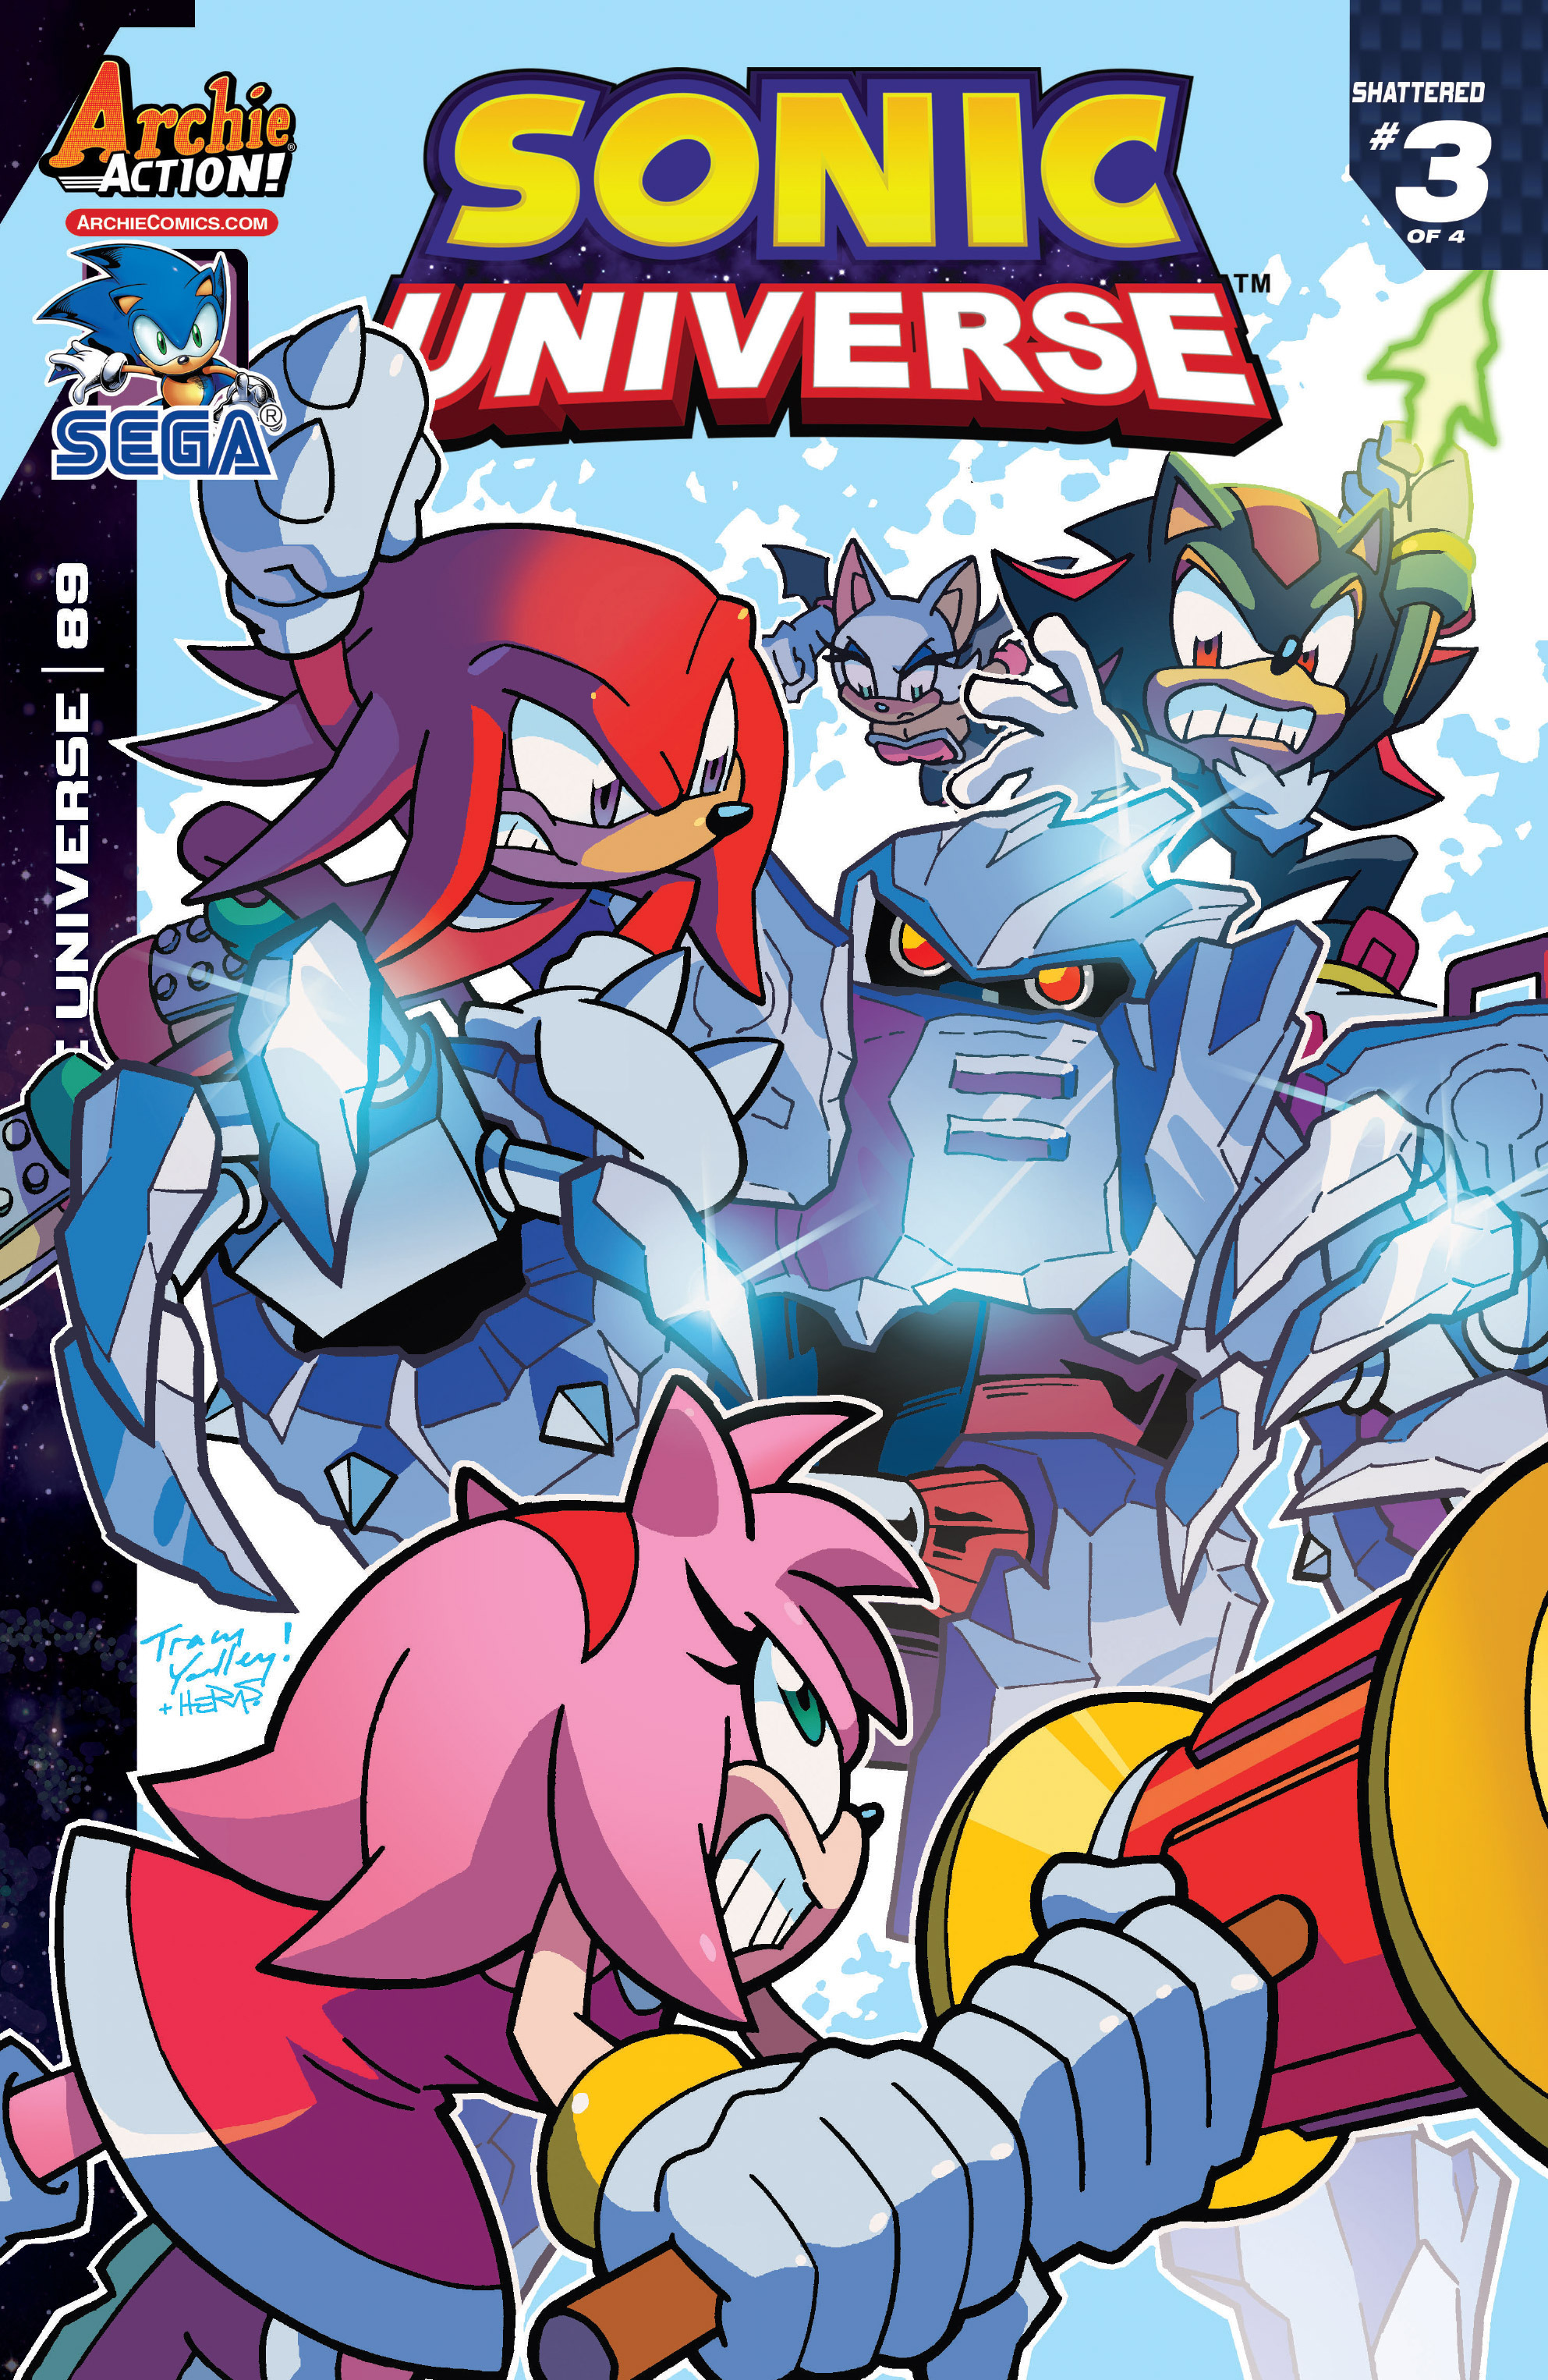 Sonic Universe 89 Page 1